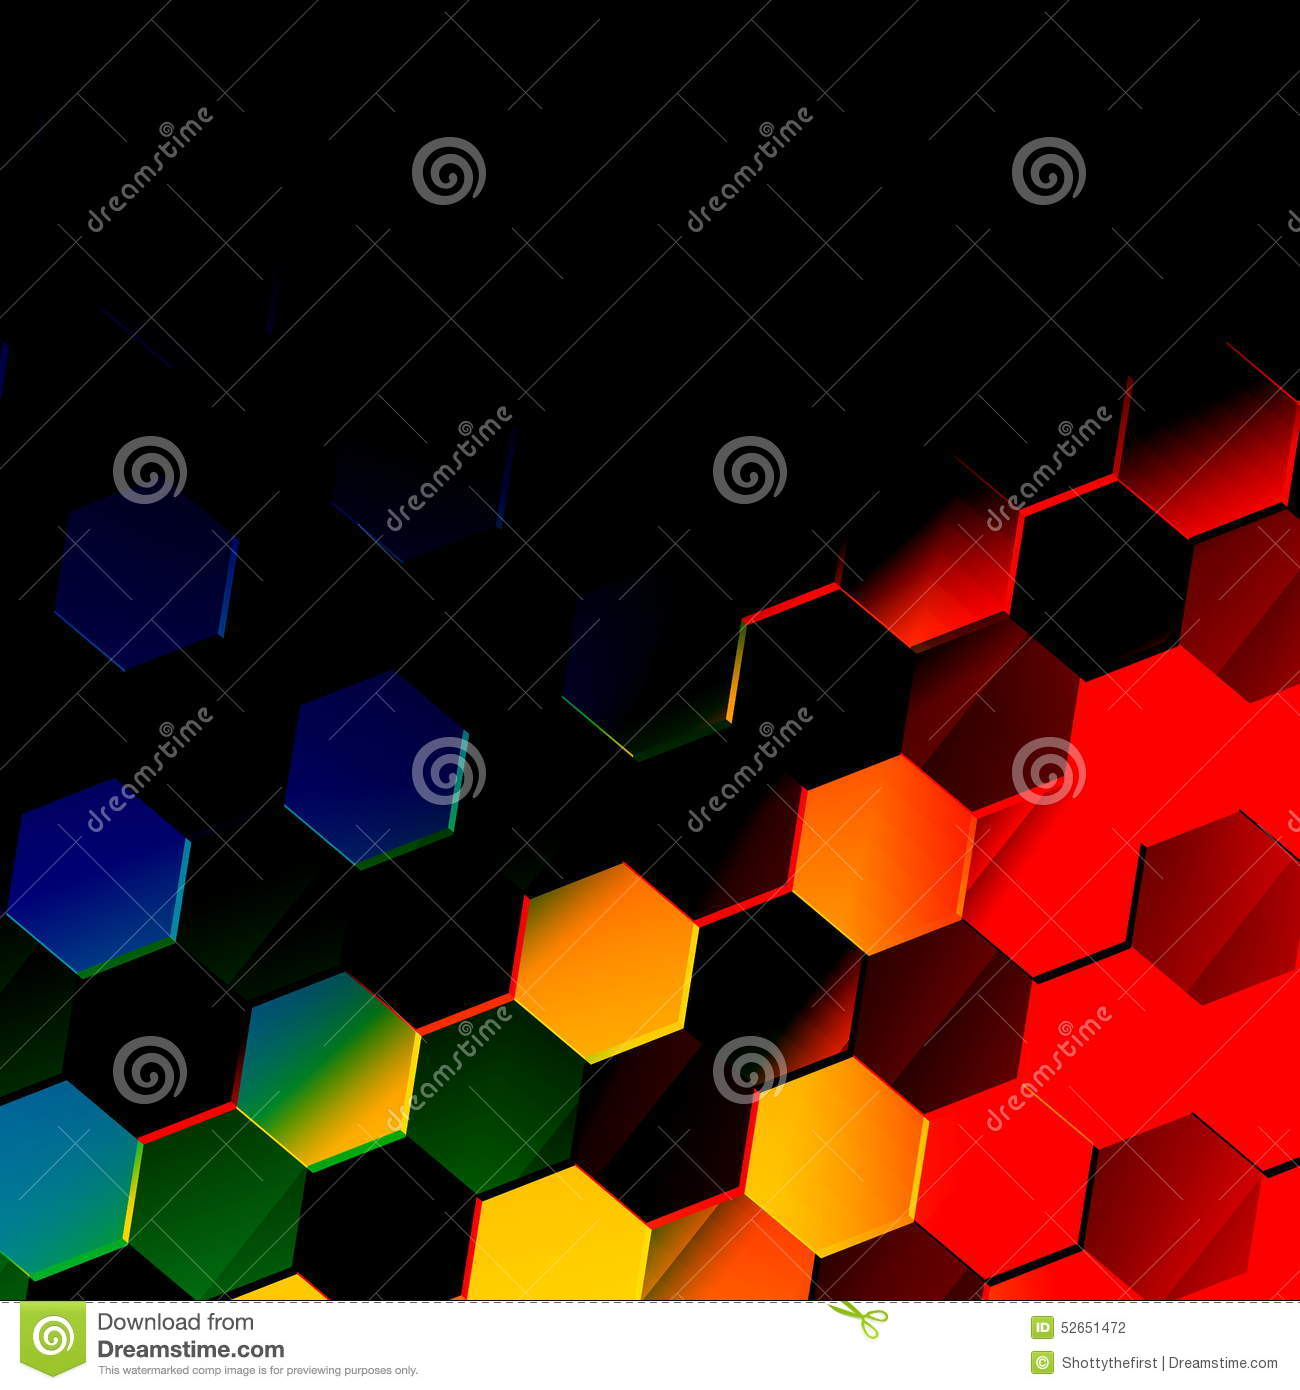 Dark Colorful Hexagonal Background Unique Abstract Hexagon Pattern Flat Modern Illustration Vibrant Texture Design Style